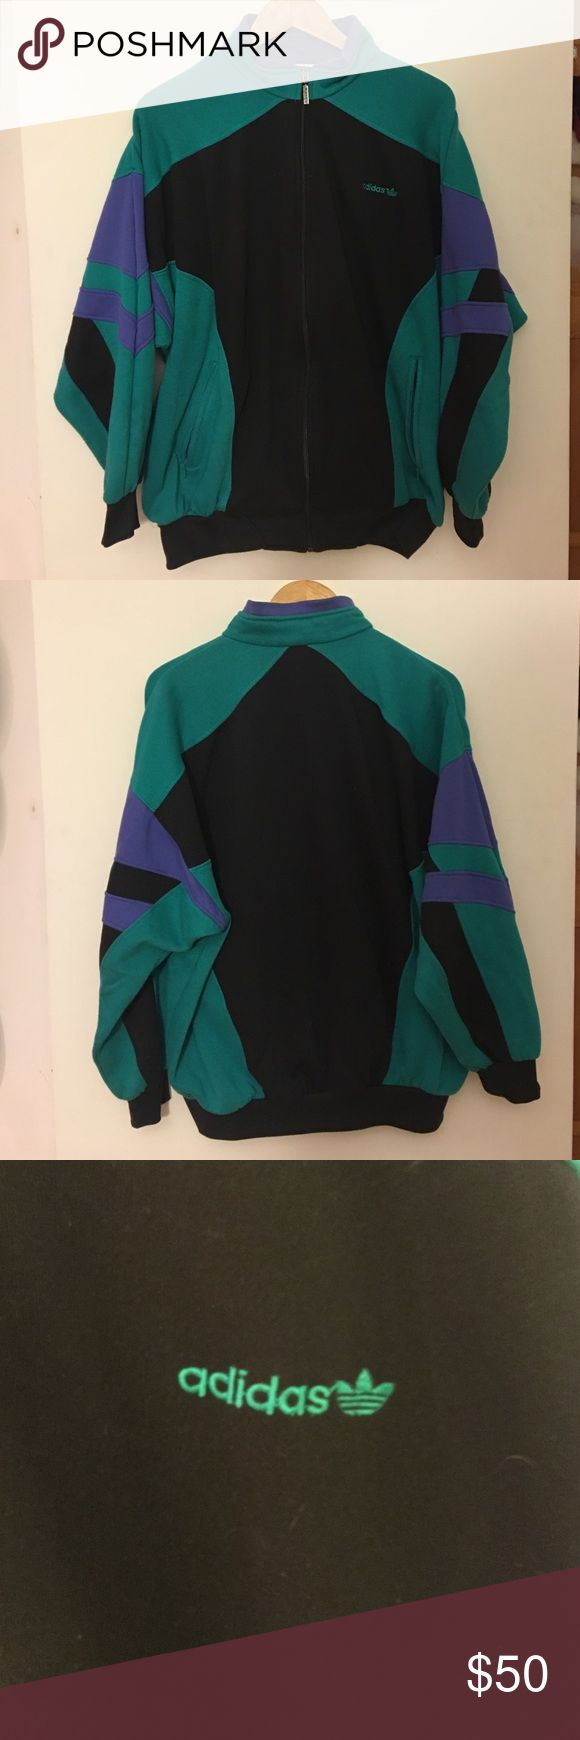 Vintage Adidas Jacket Vintage adidas jacket in great condition with retro colors, little bit of wear on the zipper from time but no stains or rips! Size LARGE Adidas Jackets & Coats